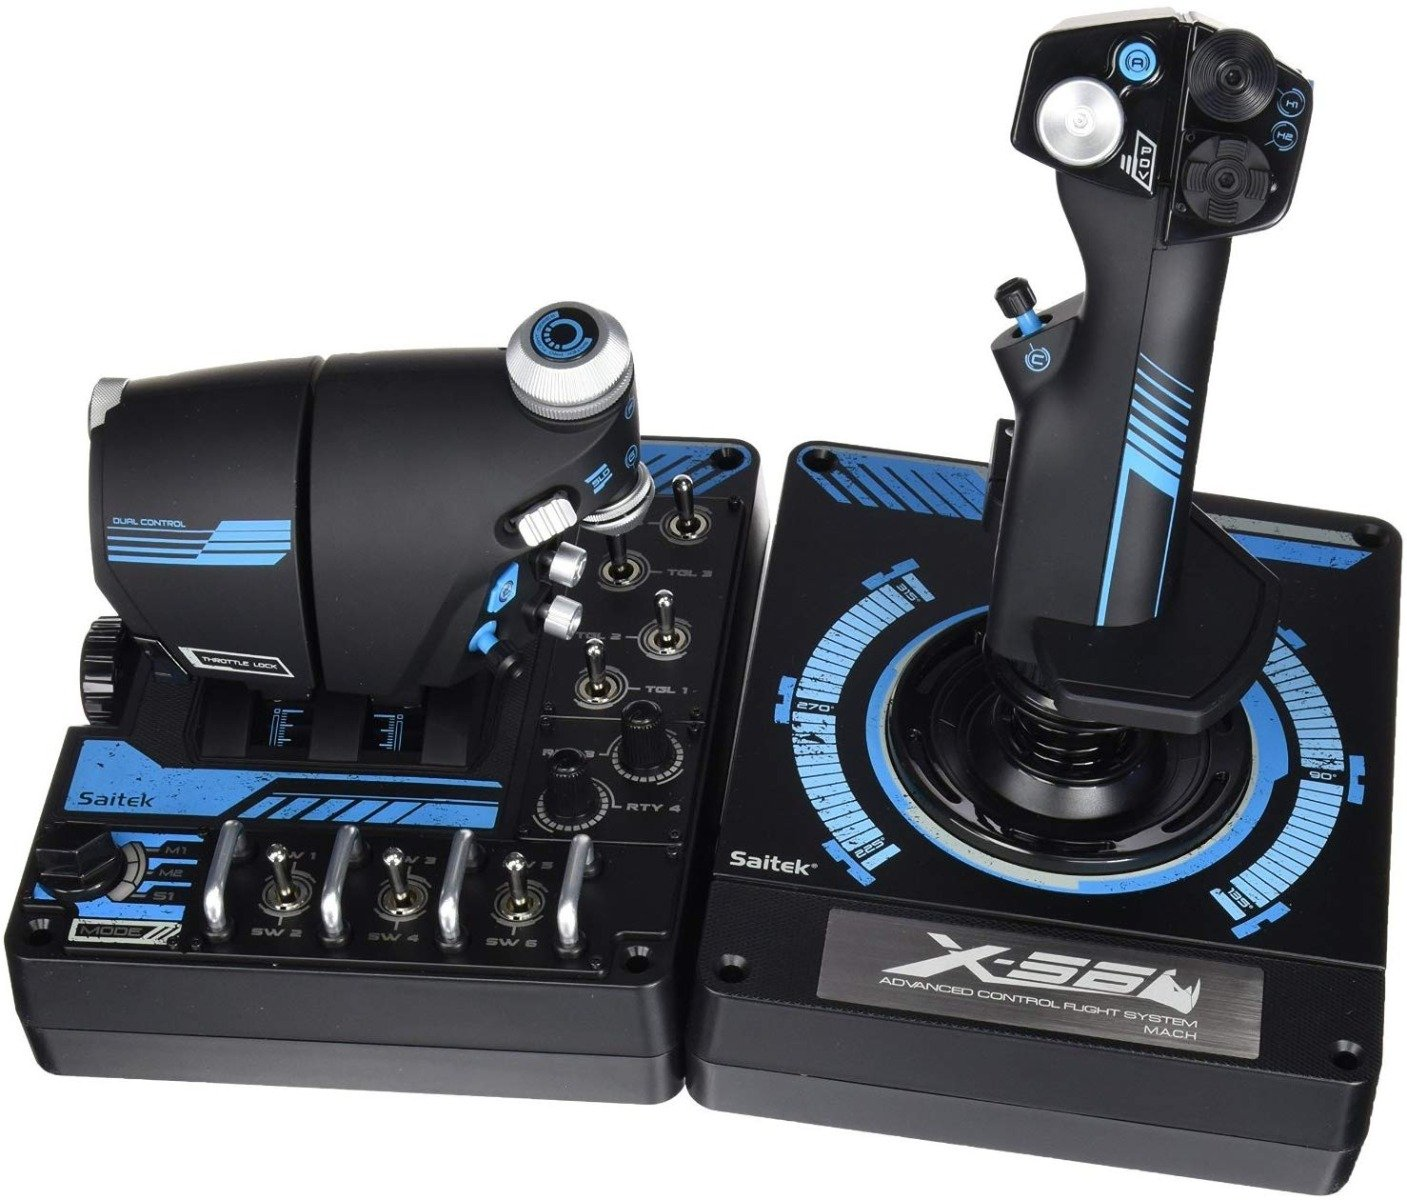 Our runner-up HOTAS pick is the Logitech G X56 Rhino (or just the standard one if you don't like the blue)